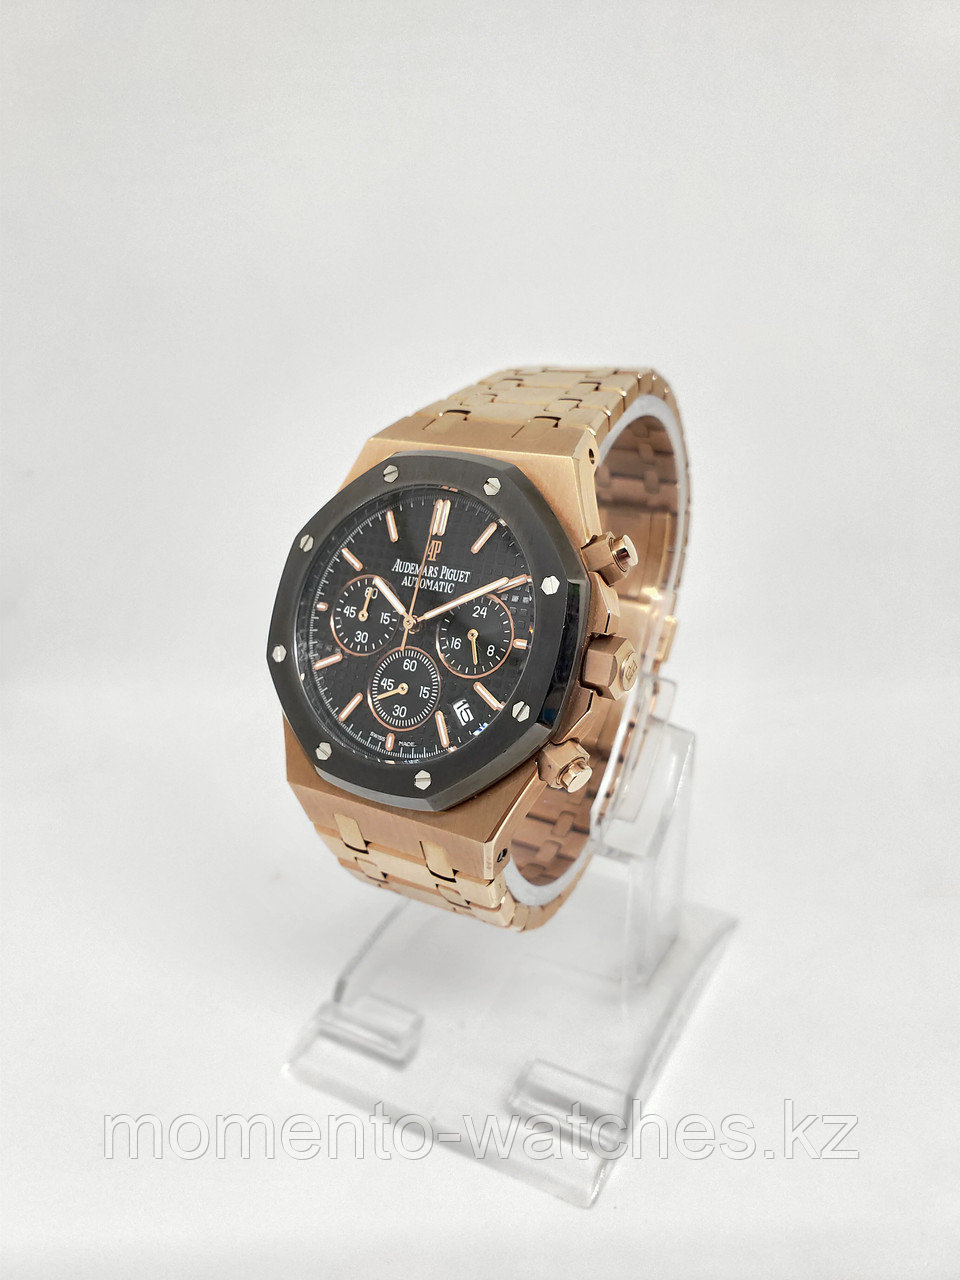 Мужские часы Audemars Piguet Roayl Oak Quartz